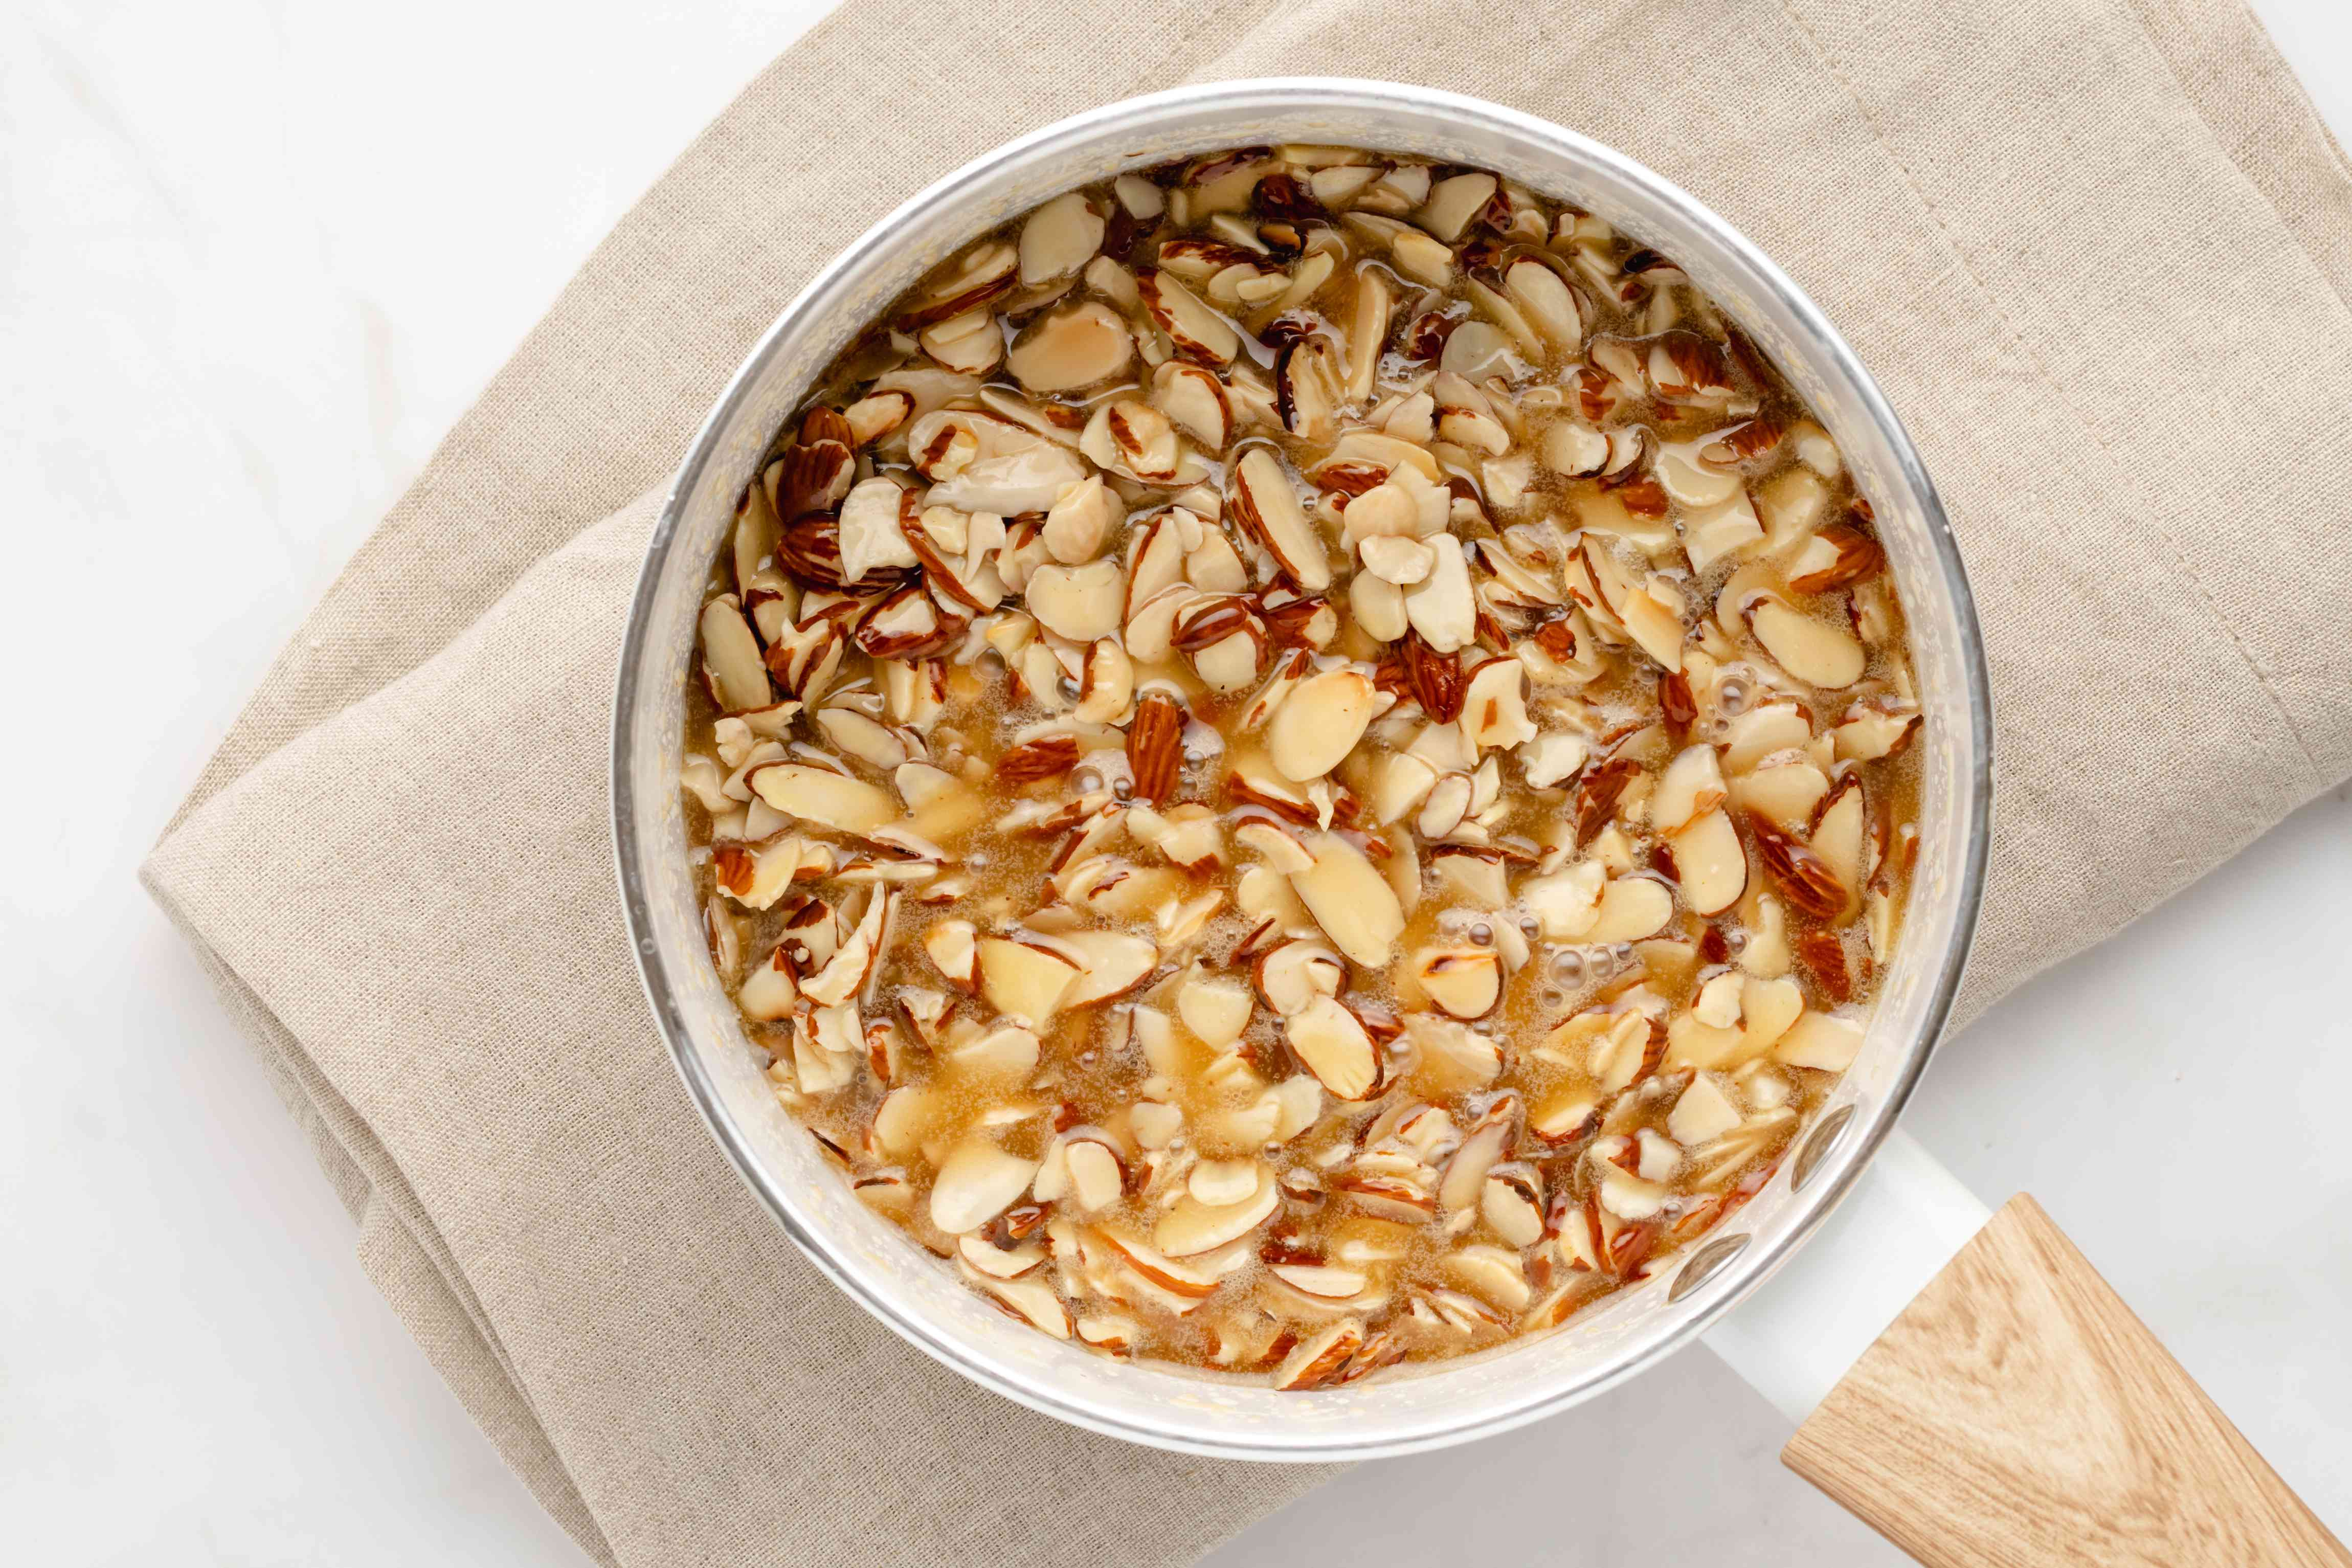 Almond topping mixture in a saucepan